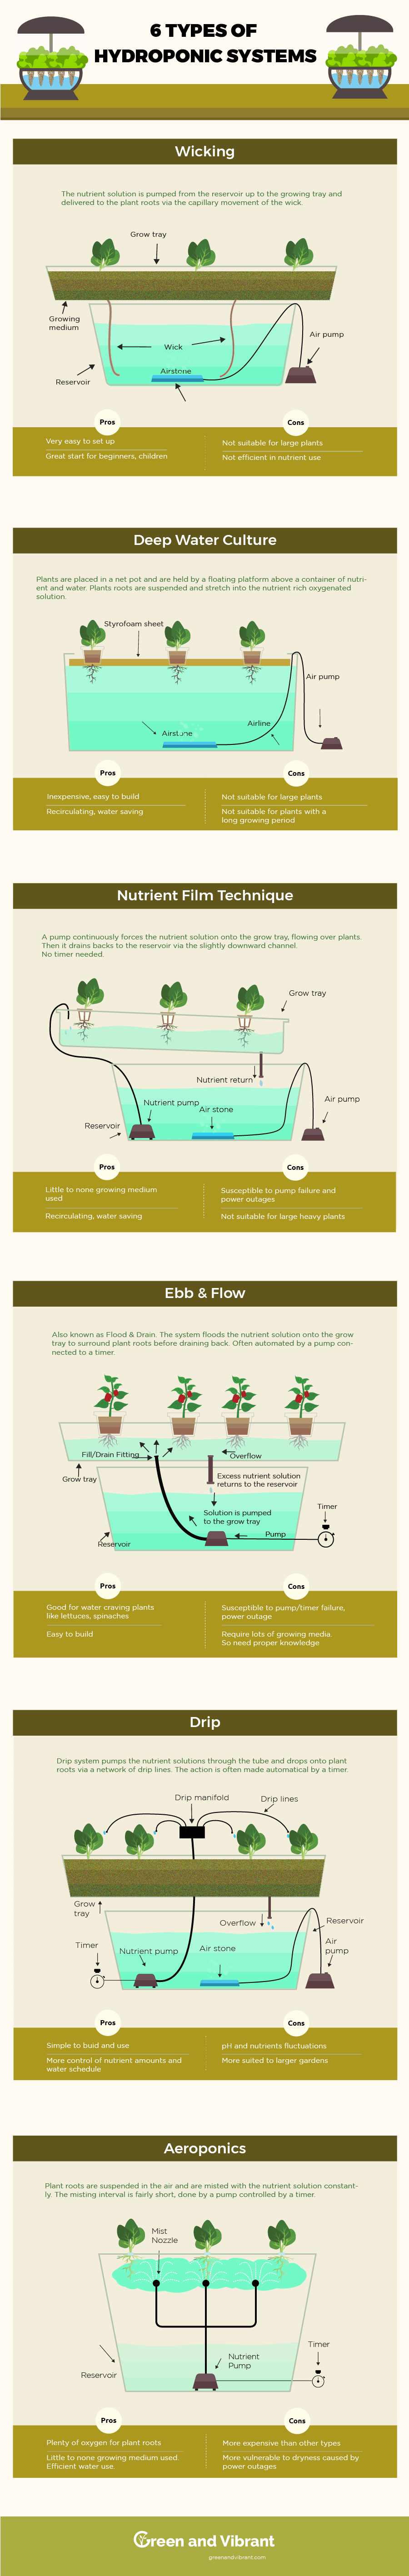 Hydroponic System Infographic